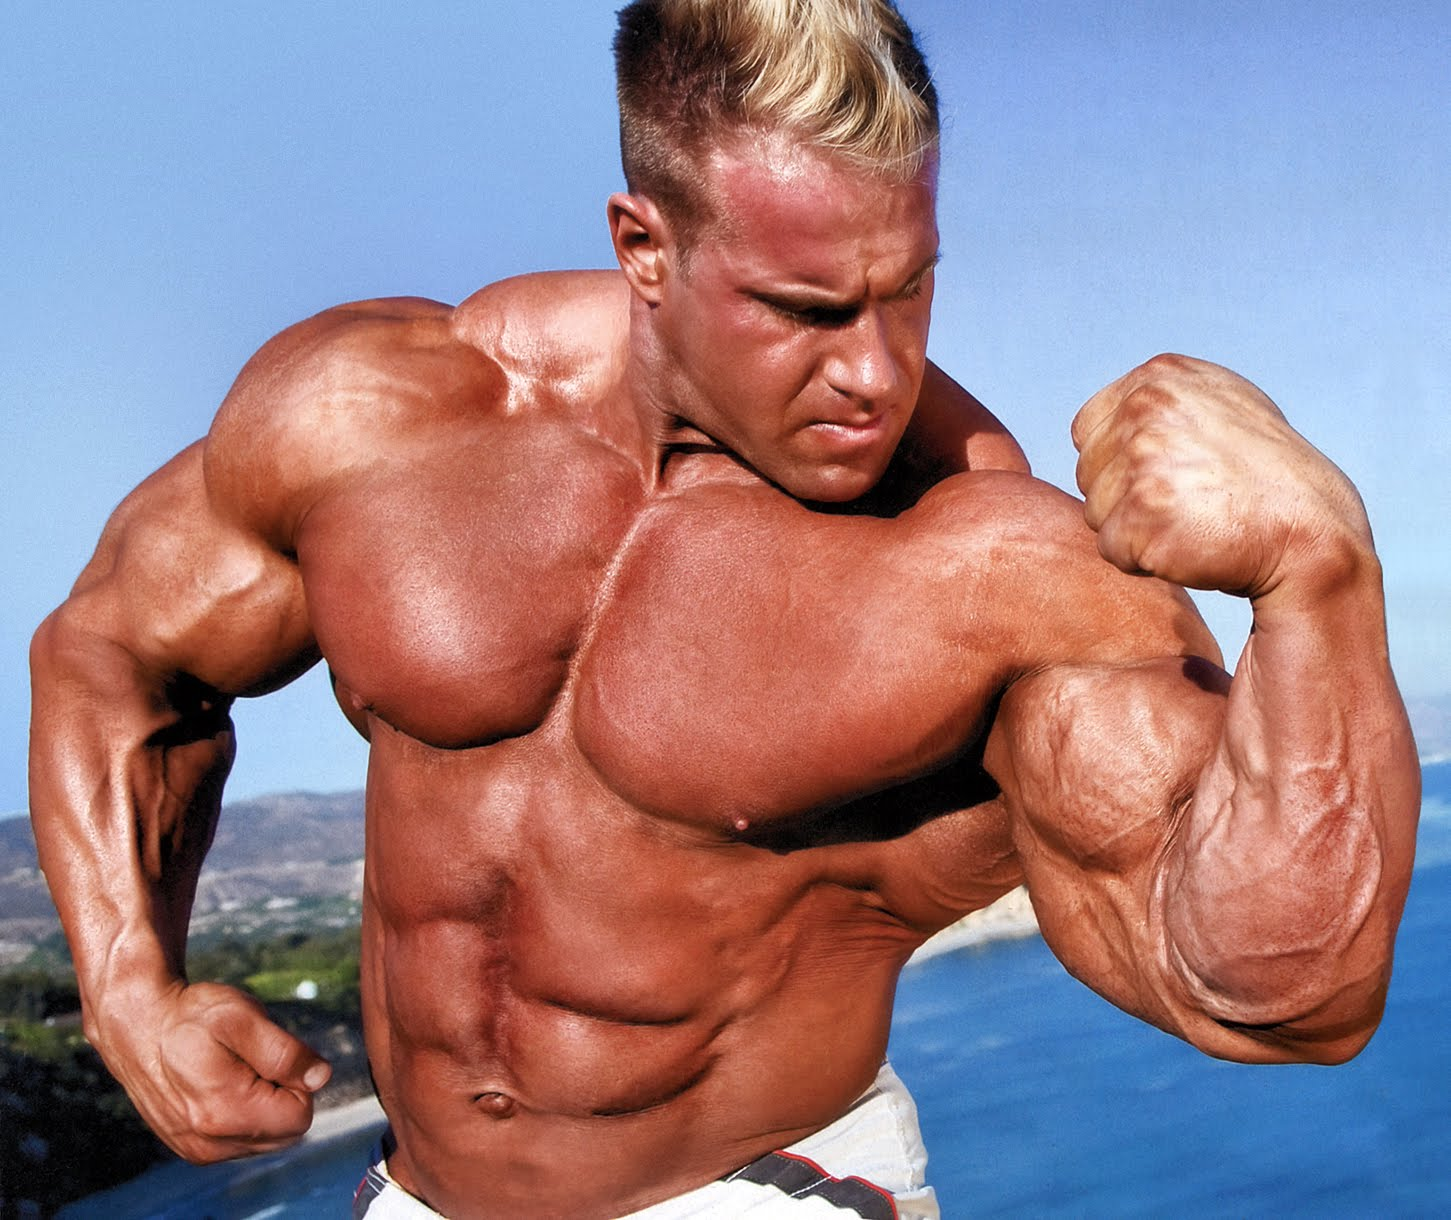 Bodybuilding,Bodybuilder,Wallpapers HD,Best Bodybuilders